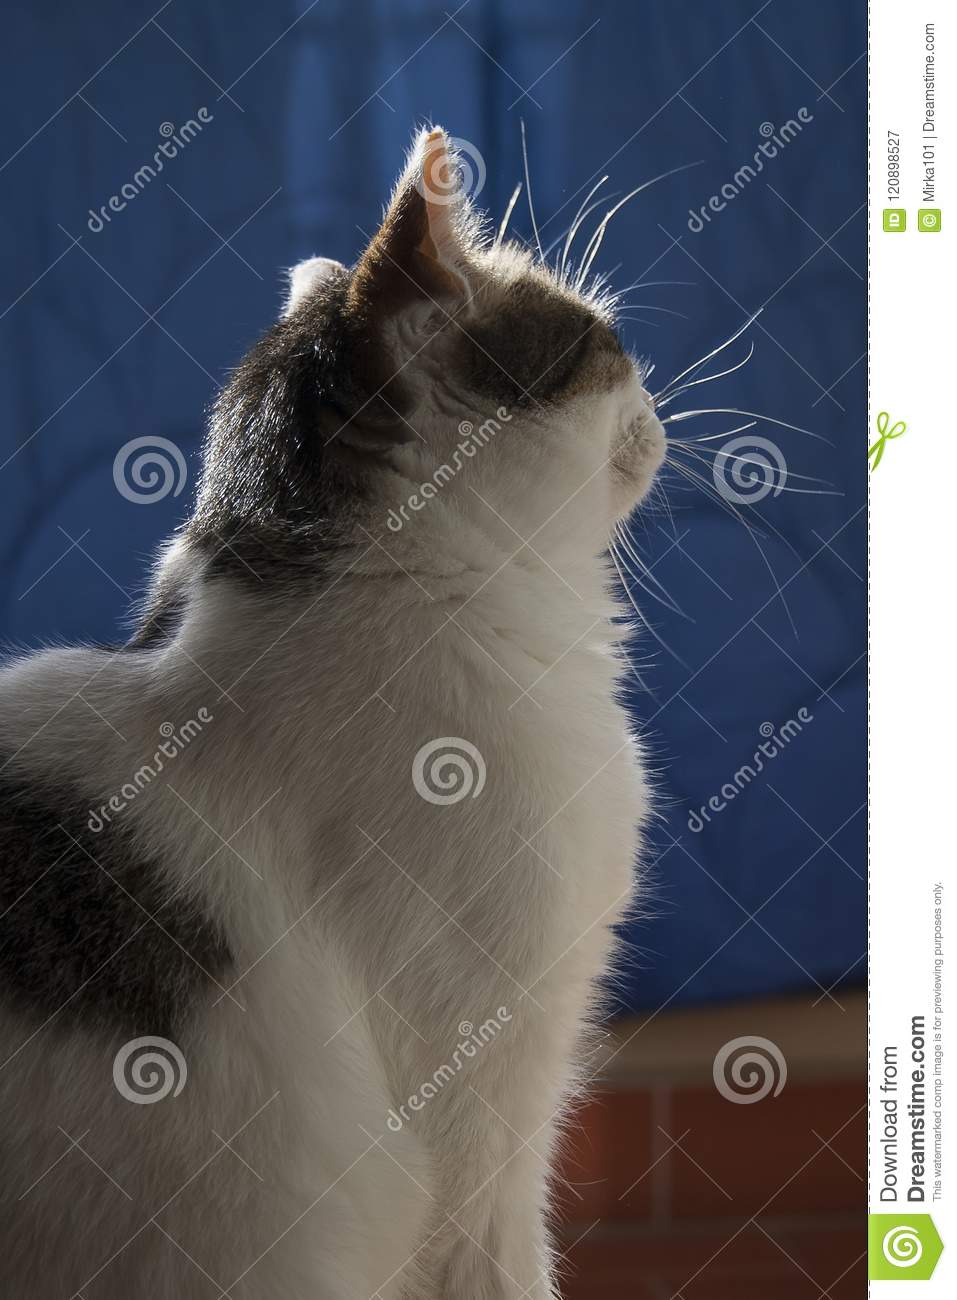 Cute White Cat Wallpaper On A Blue Background Stock Image Image